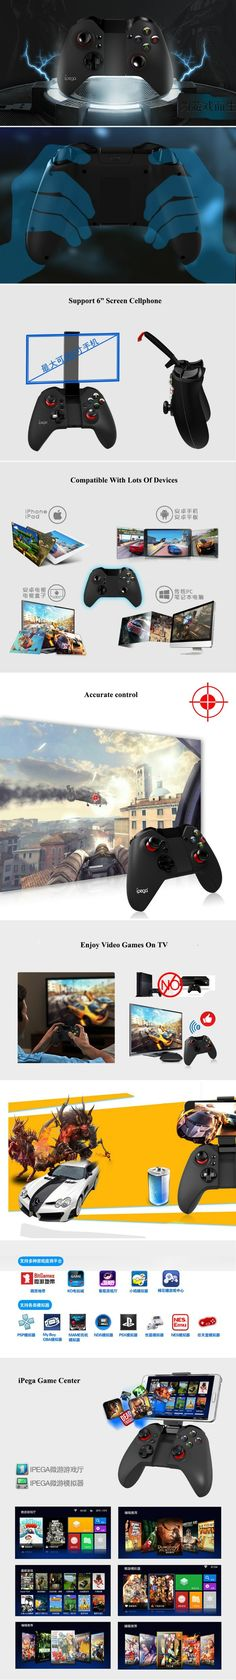 iPega PG-9038 Wireless Bluetooth Android gamepad Console Gaming Controller PC Joystick Game Controller For iPhone Android TV